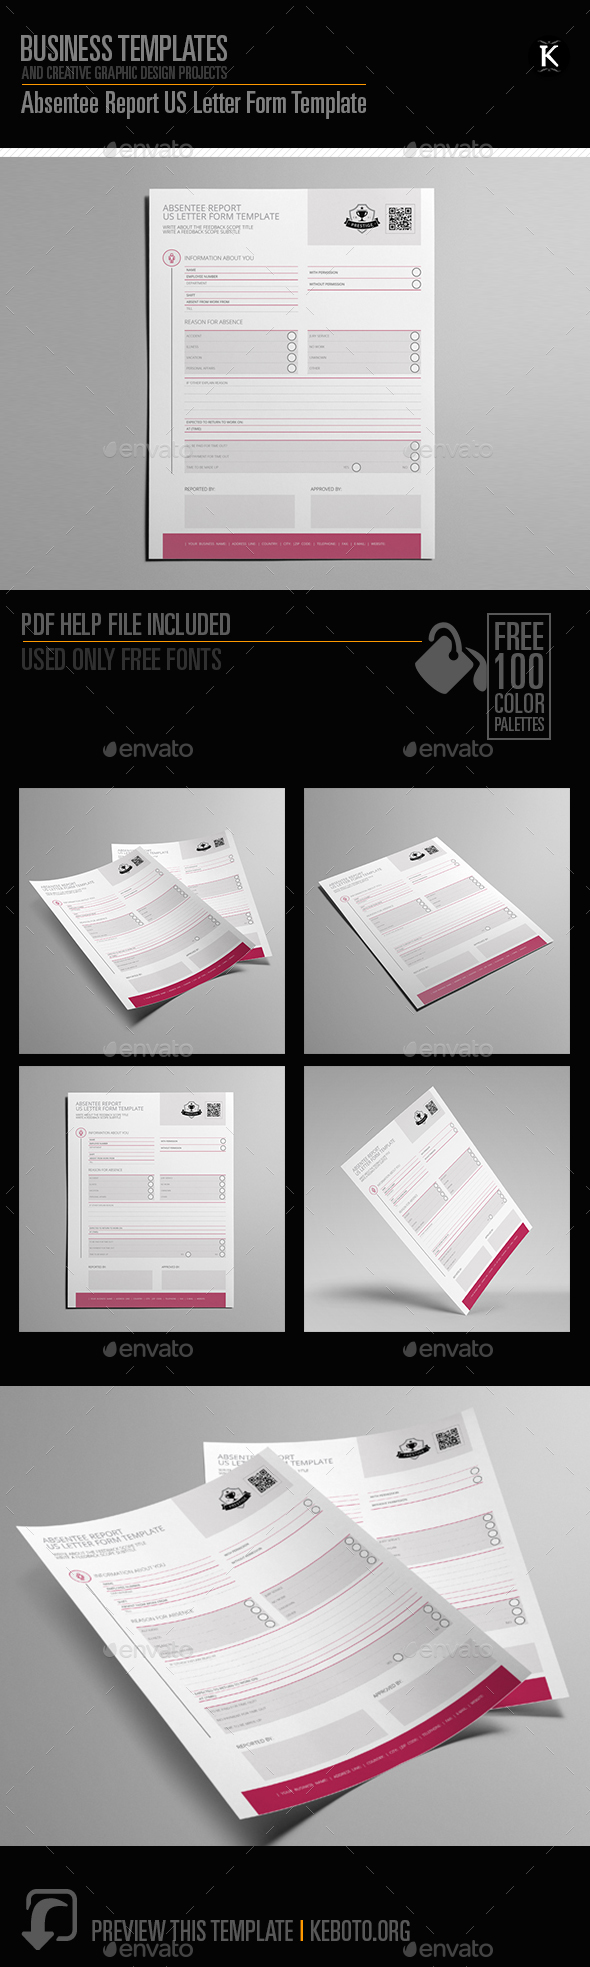 GraphicRiver Absentee Report US Letter Form Template 20662267